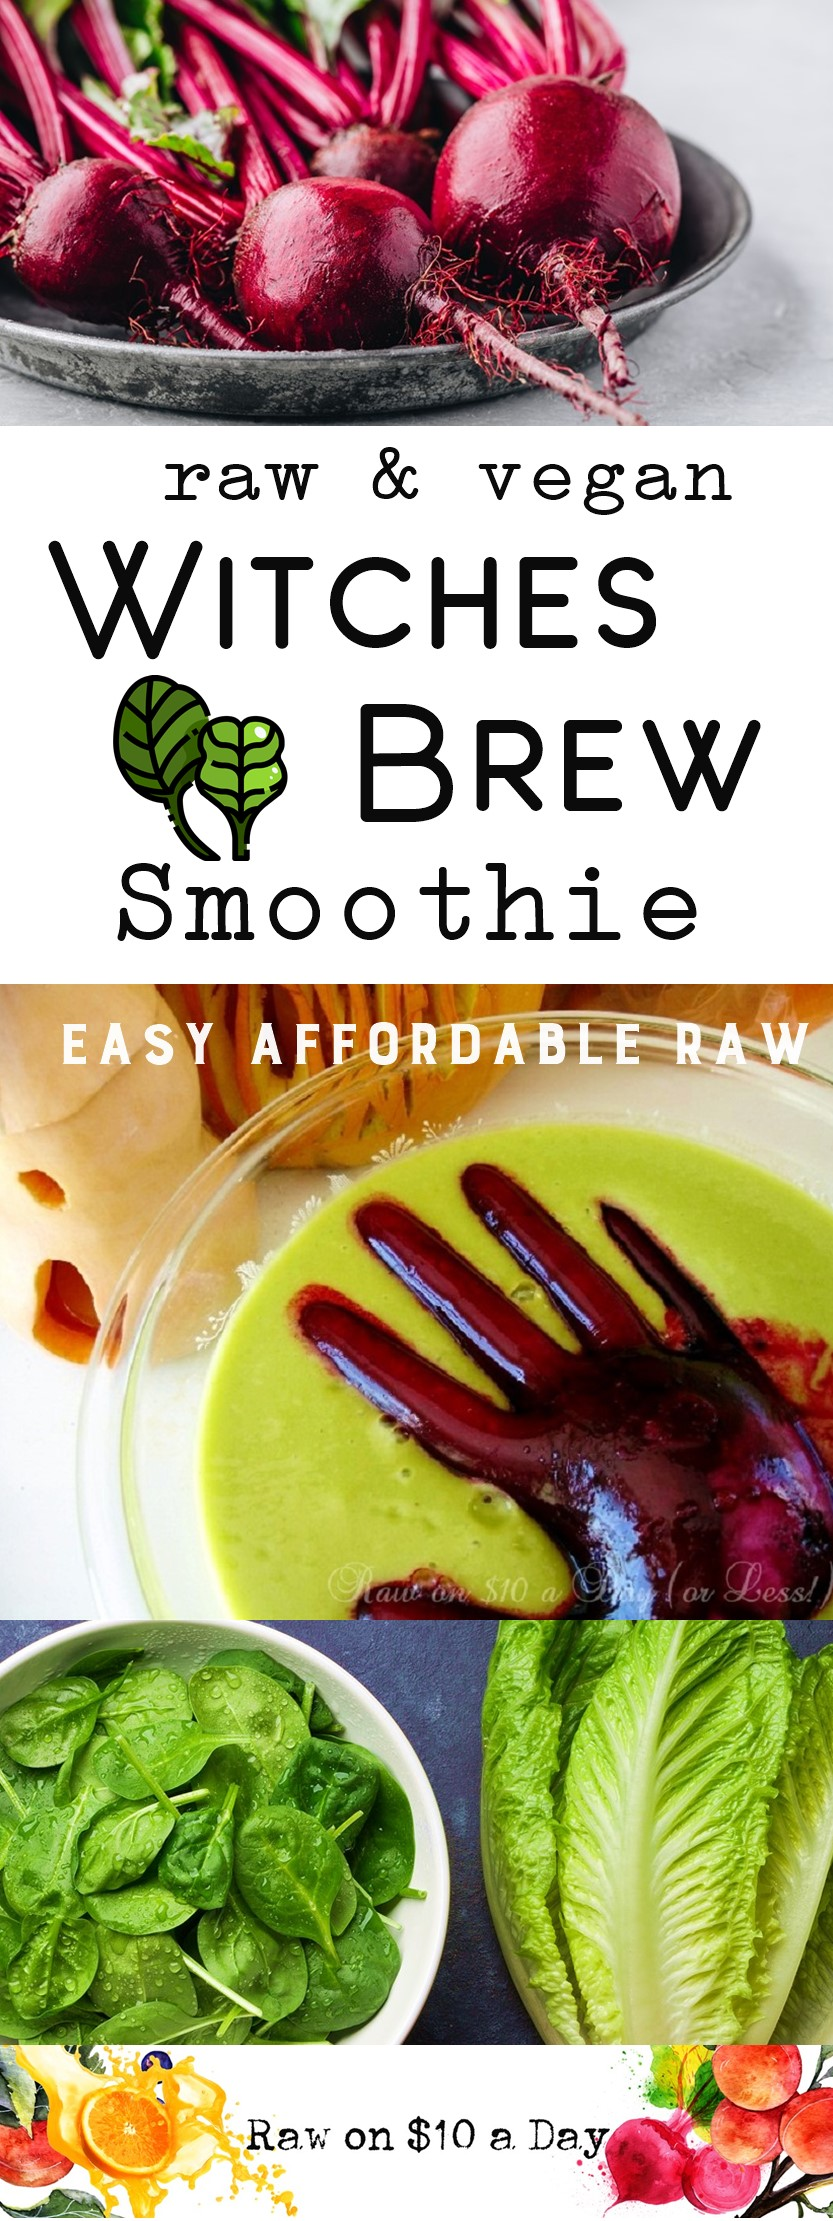 Vegan Halloween Recipe Raw Food Treat Witches Brew Smoothie with a Monster Hand Scary Delicious and Frighteningly Healthy from Raw on 10 PIN IT